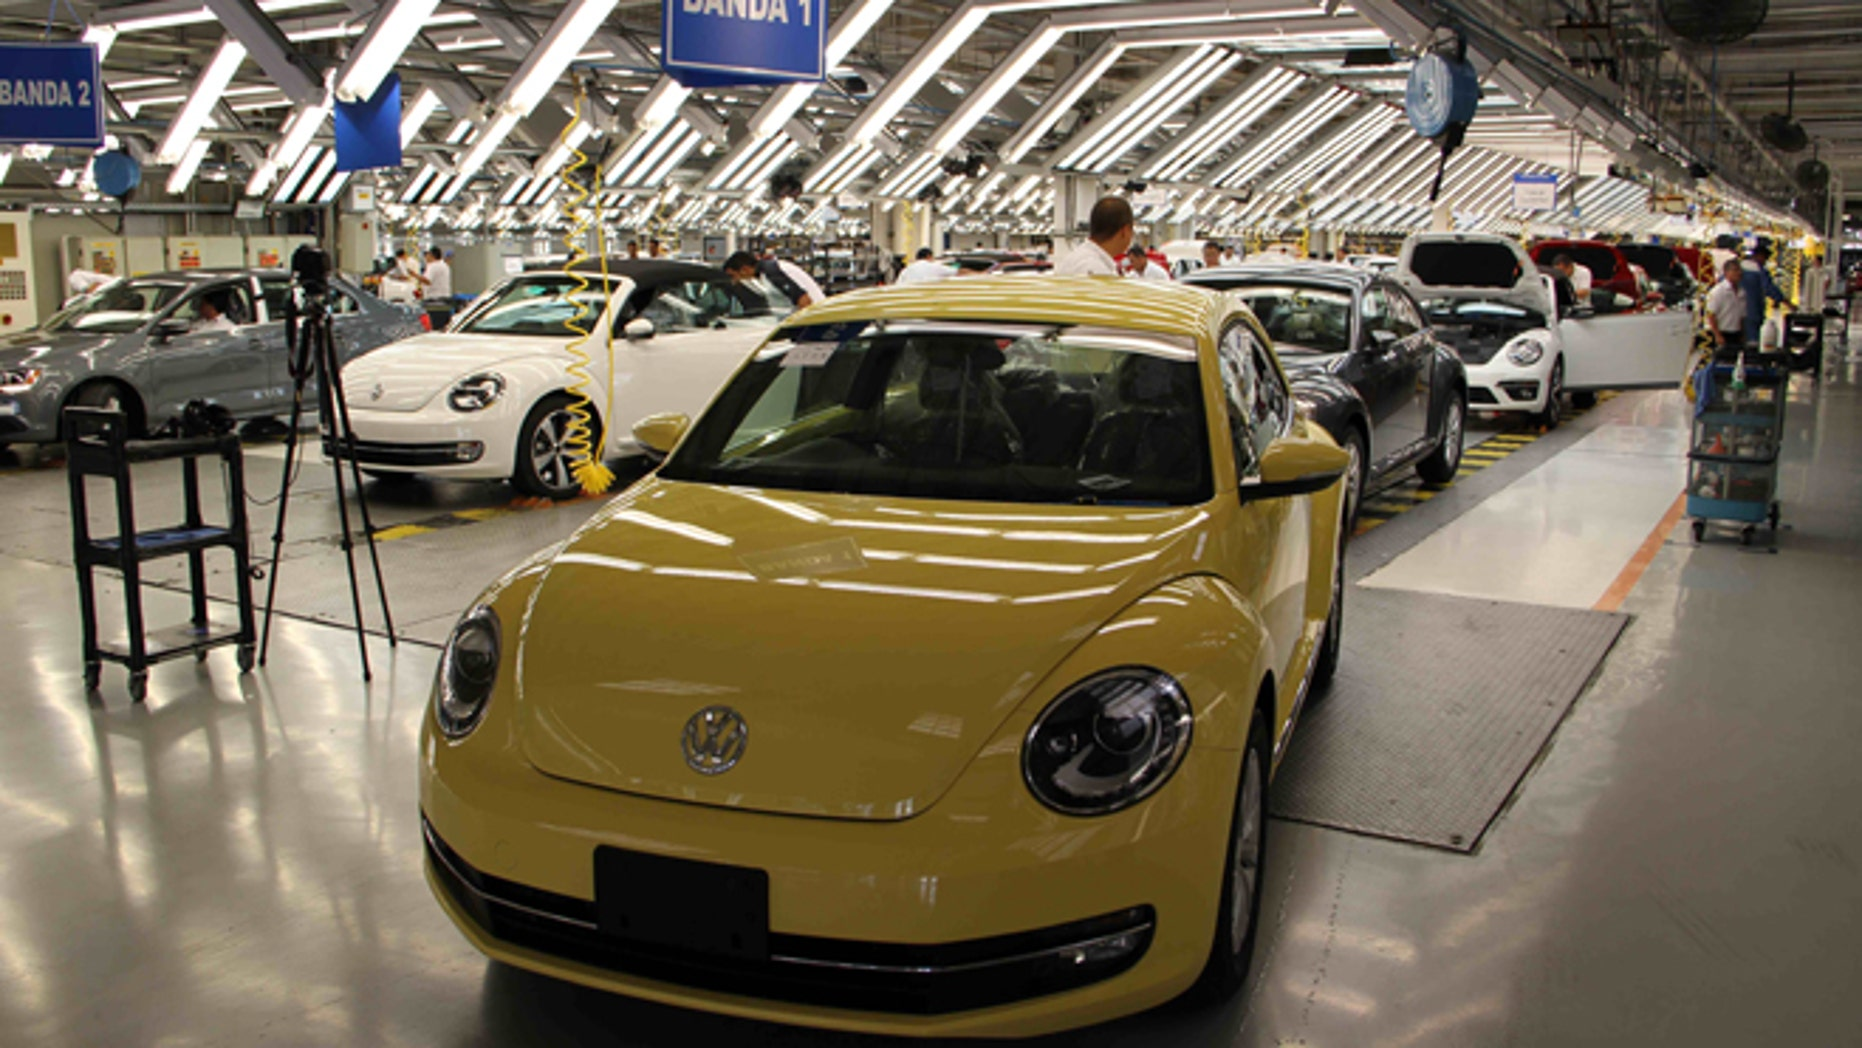 One of the assembly lines at Volkswagen's campus in Puebla, Mexico. (Photo: Nathaniel Parish Flannery/Fox News Latino)